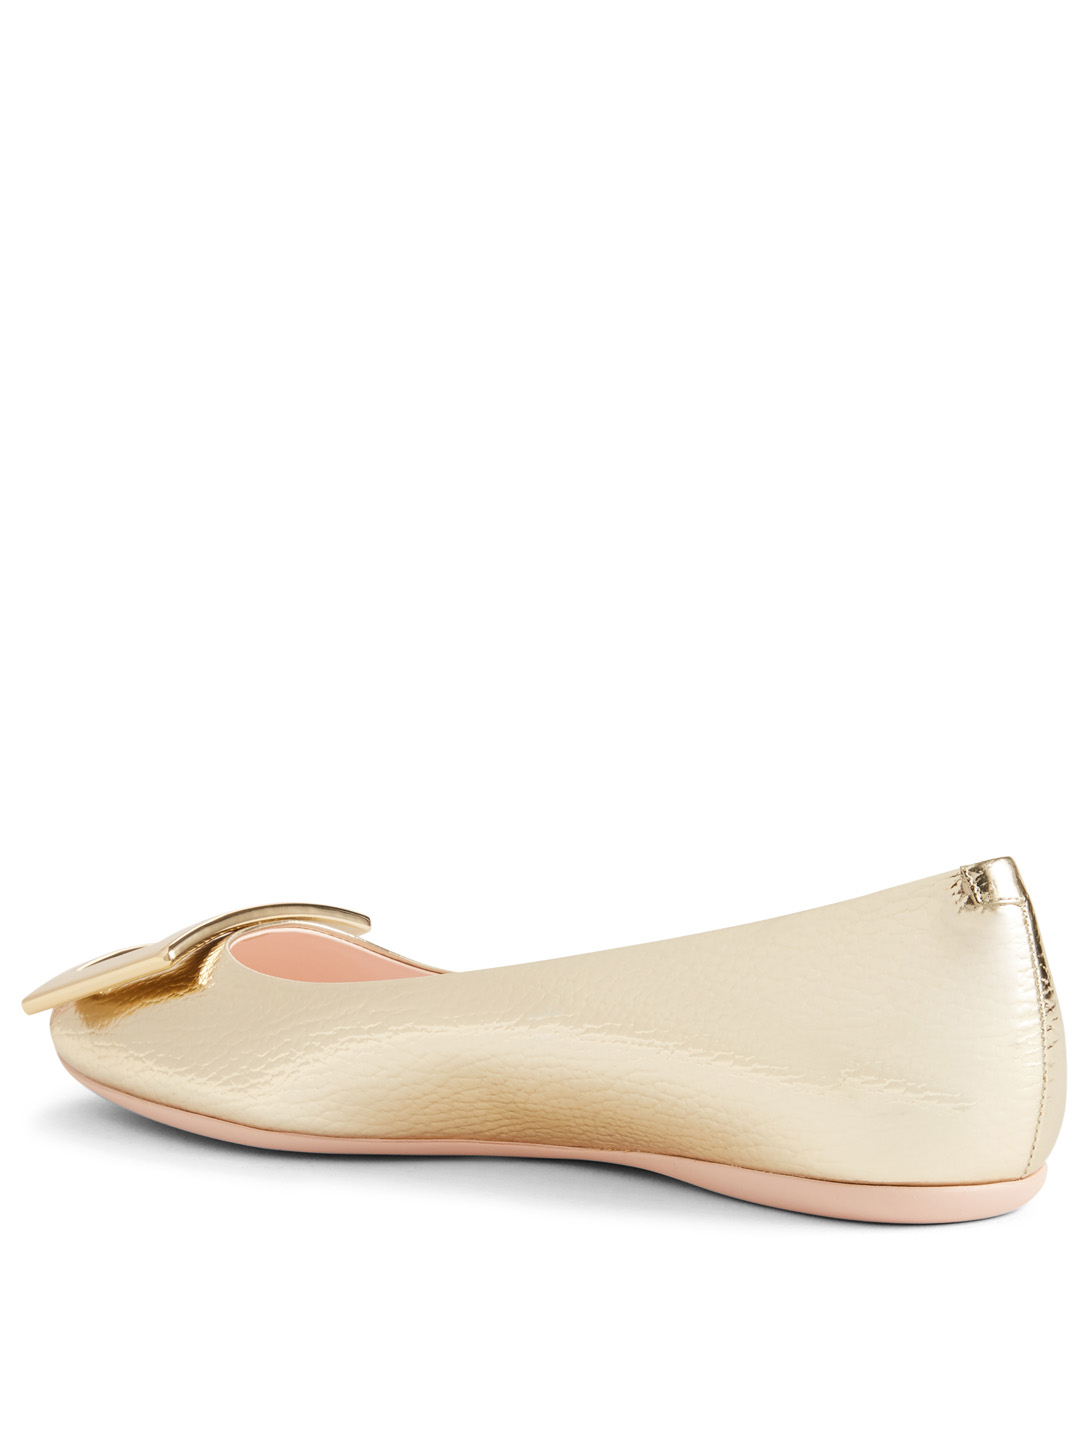 ROGER VIVIER Gommette Metallic Leather Ballet Flats With Buckle Womens Gold